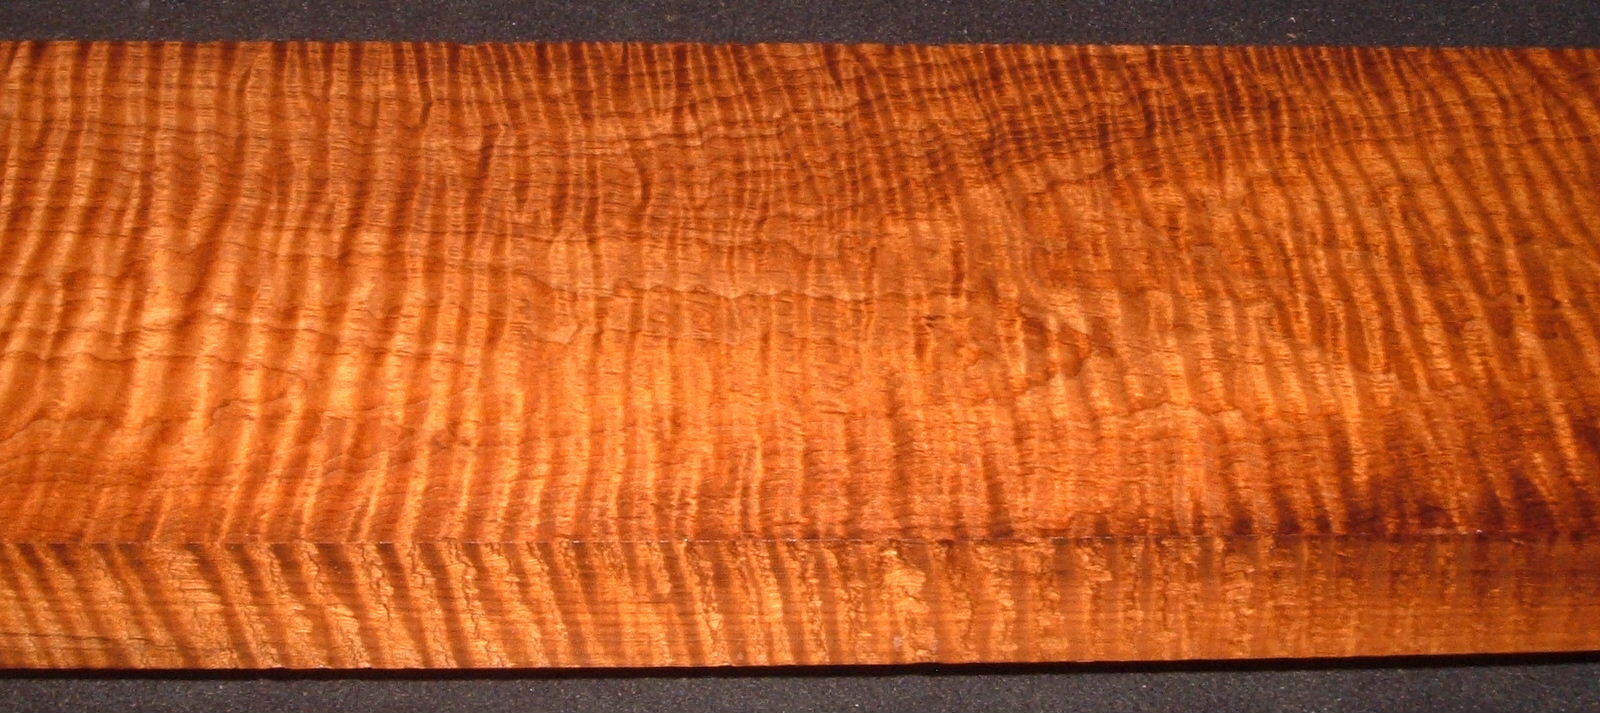 RM2006-177, 1-3/4x7x53, Roasted Curly Maple